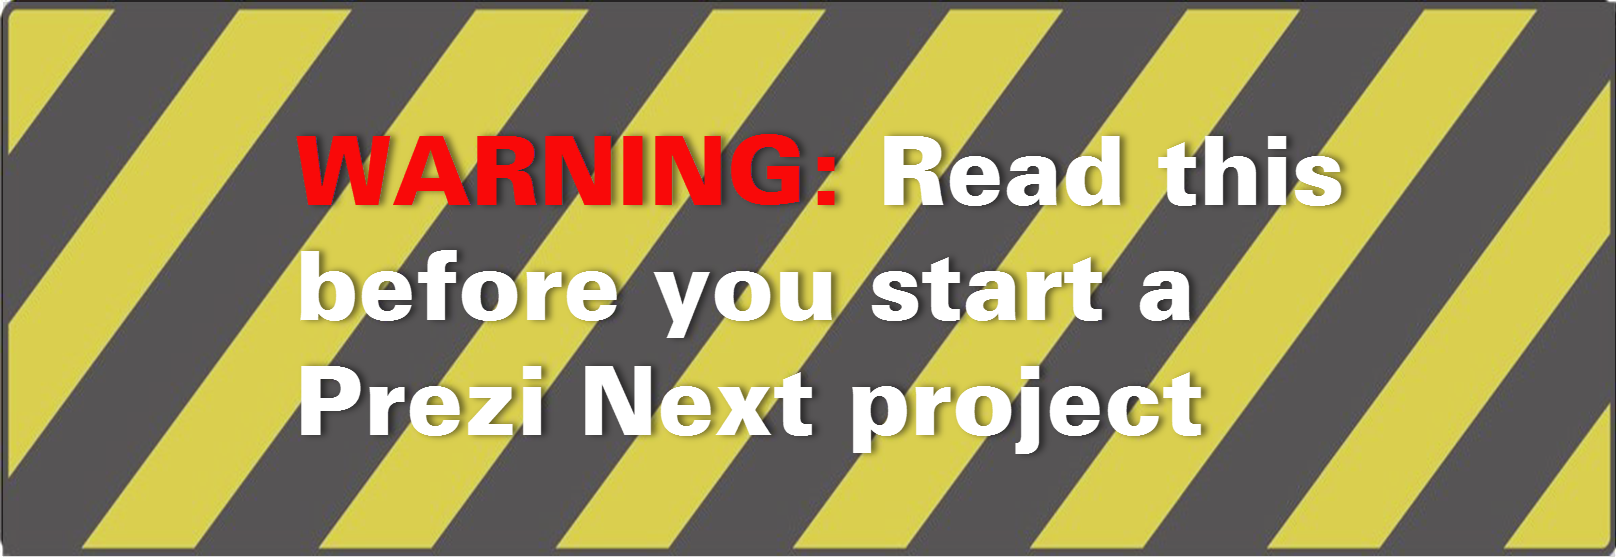 WARNING Read this before you start a Prezi Next project